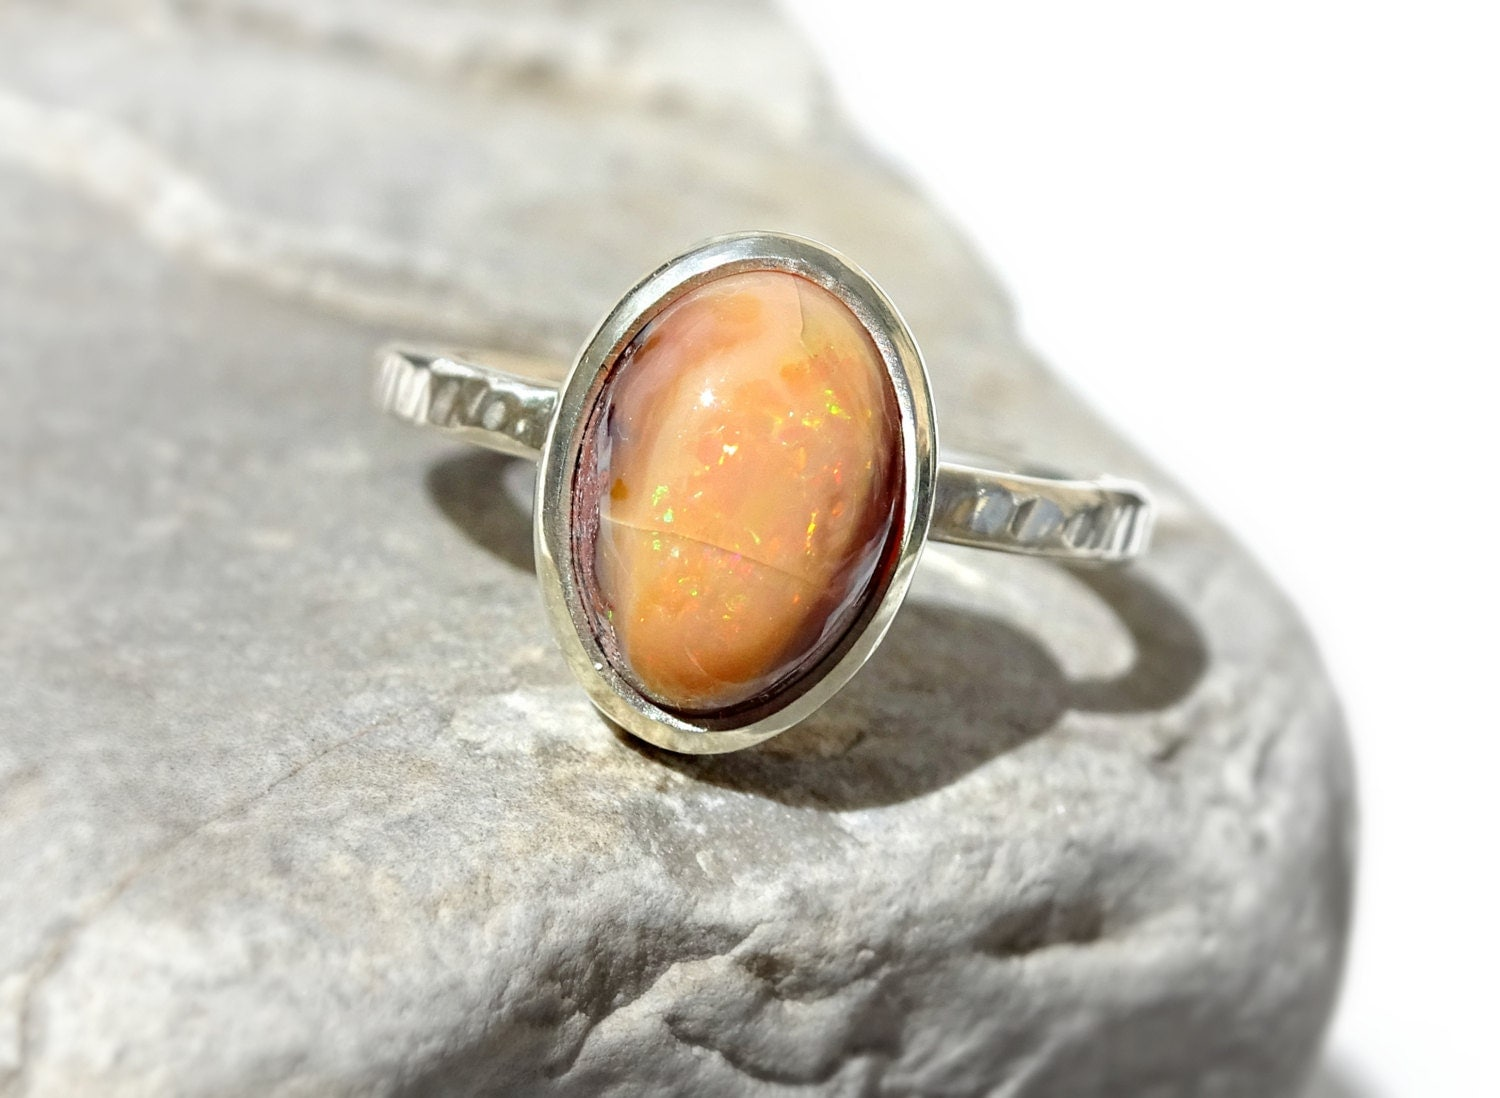 fire opal engagement ring cantera opal ring matrix opal ring. Black Bedroom Furniture Sets. Home Design Ideas